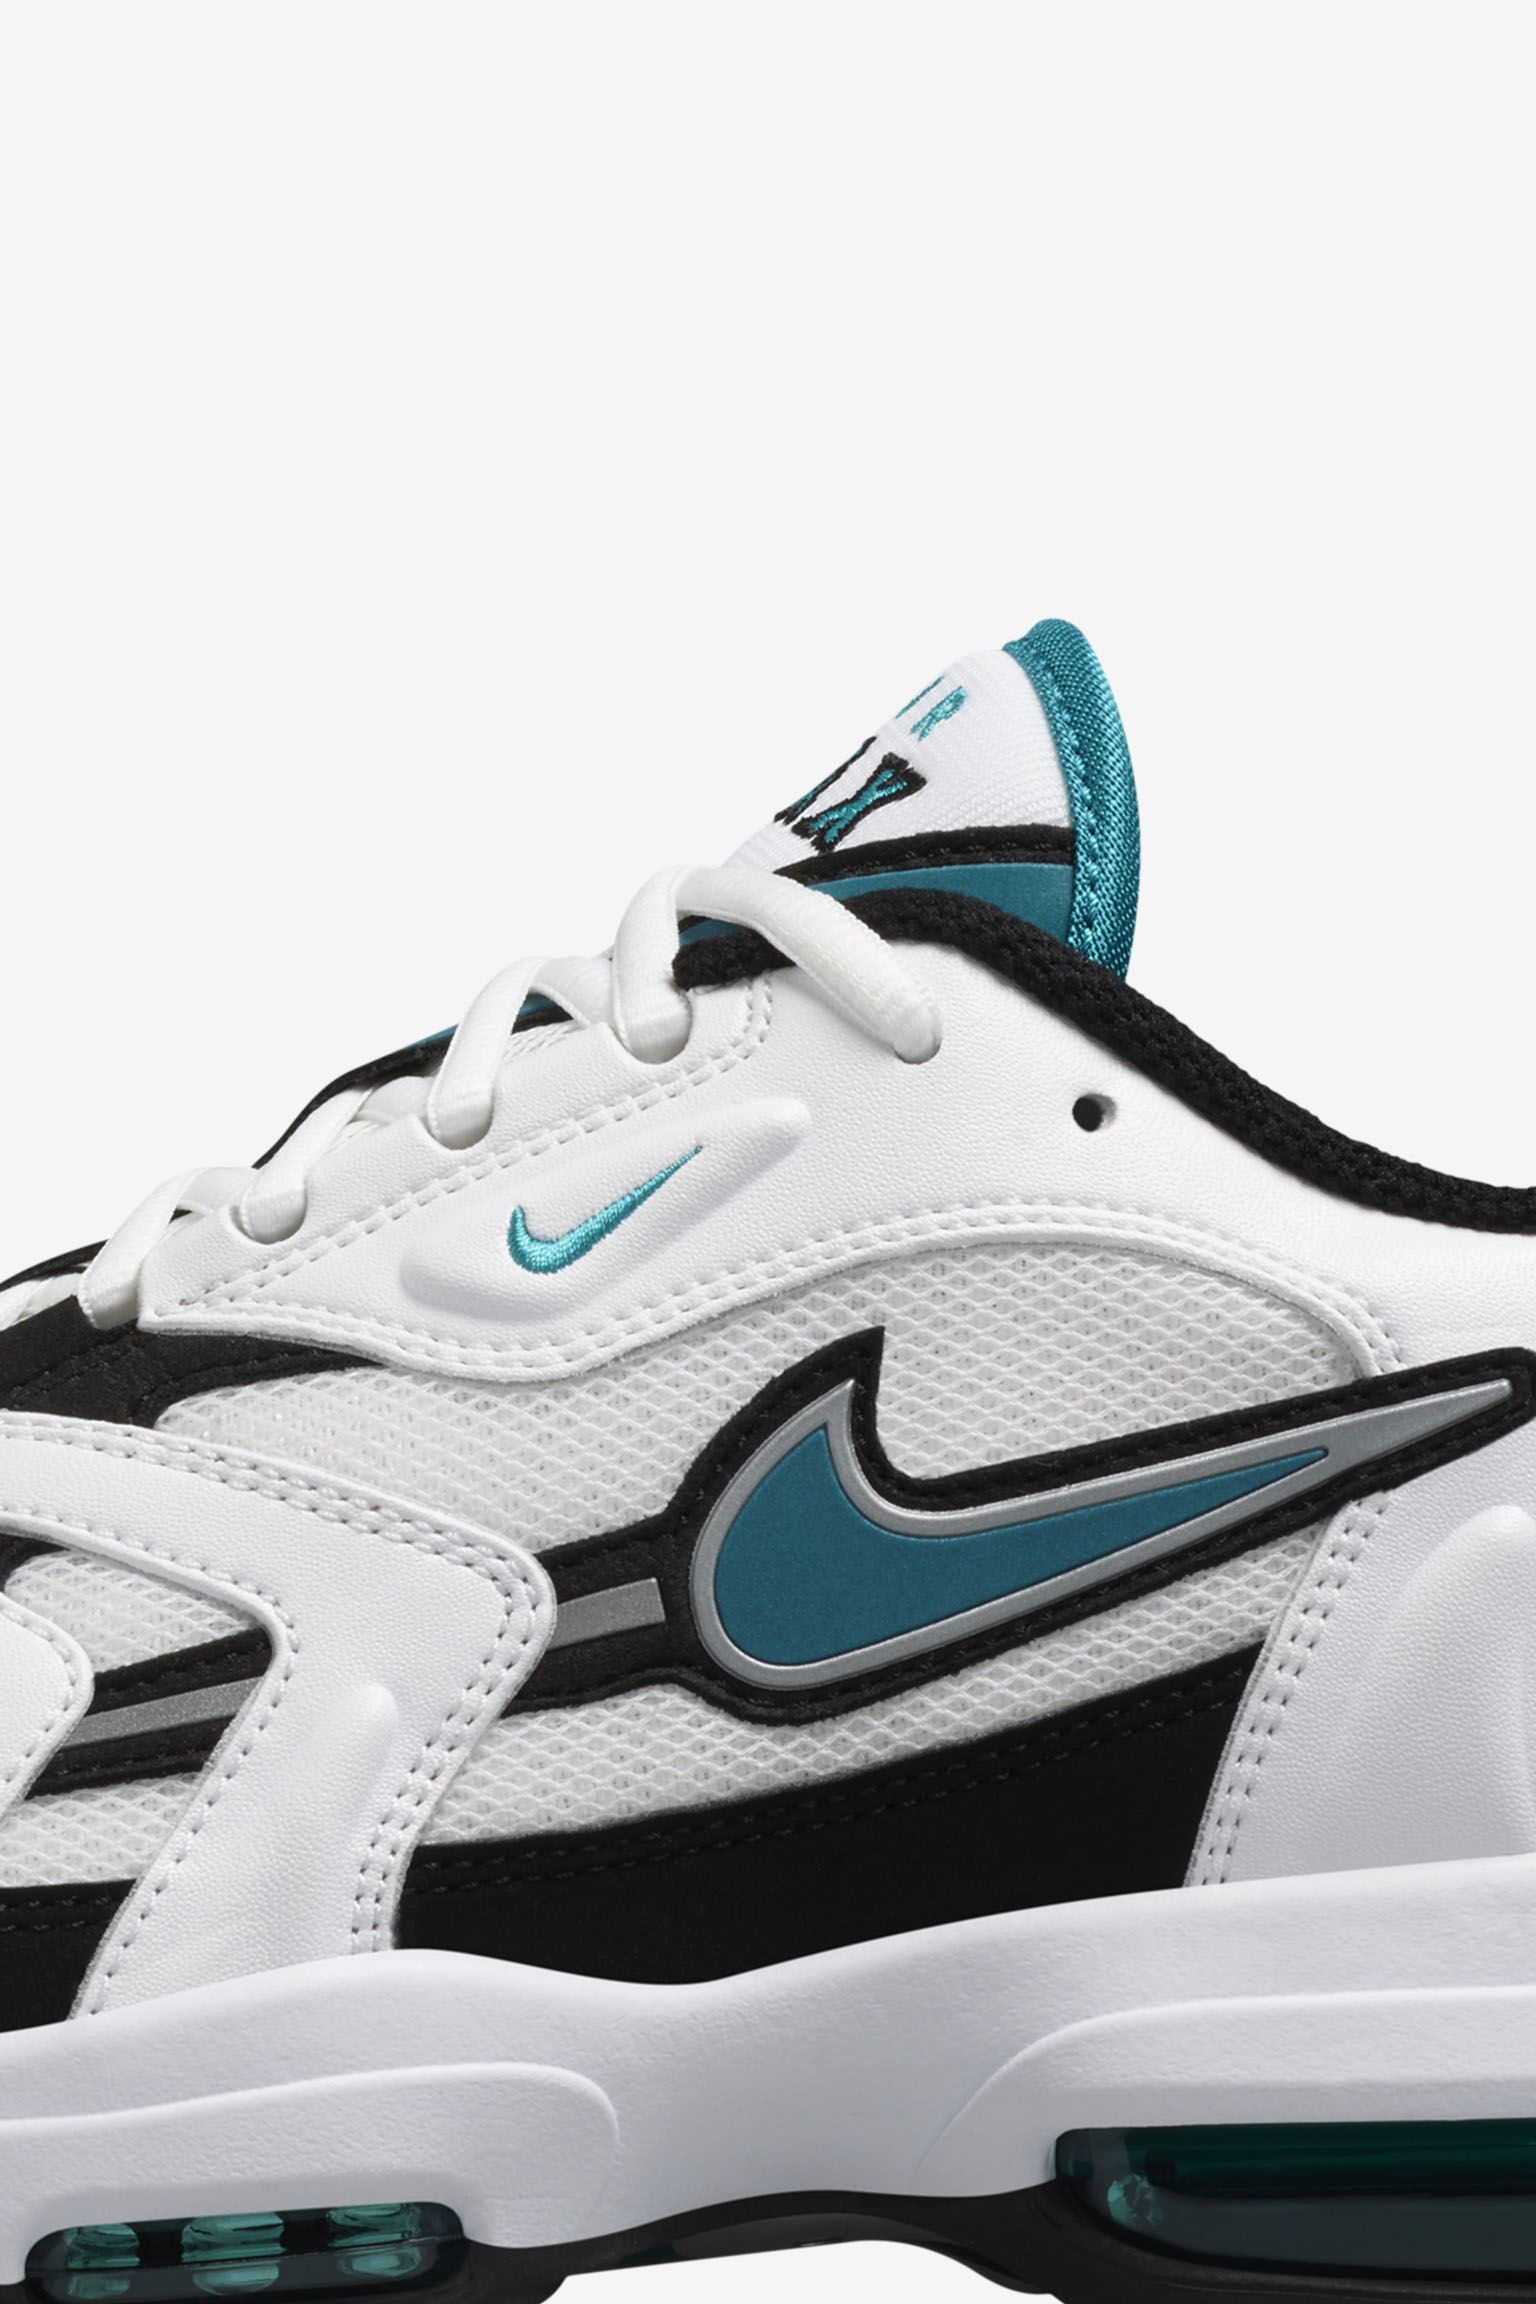 Nike Air Max 96 2 XX Modern Max 'White, Teal & Black'